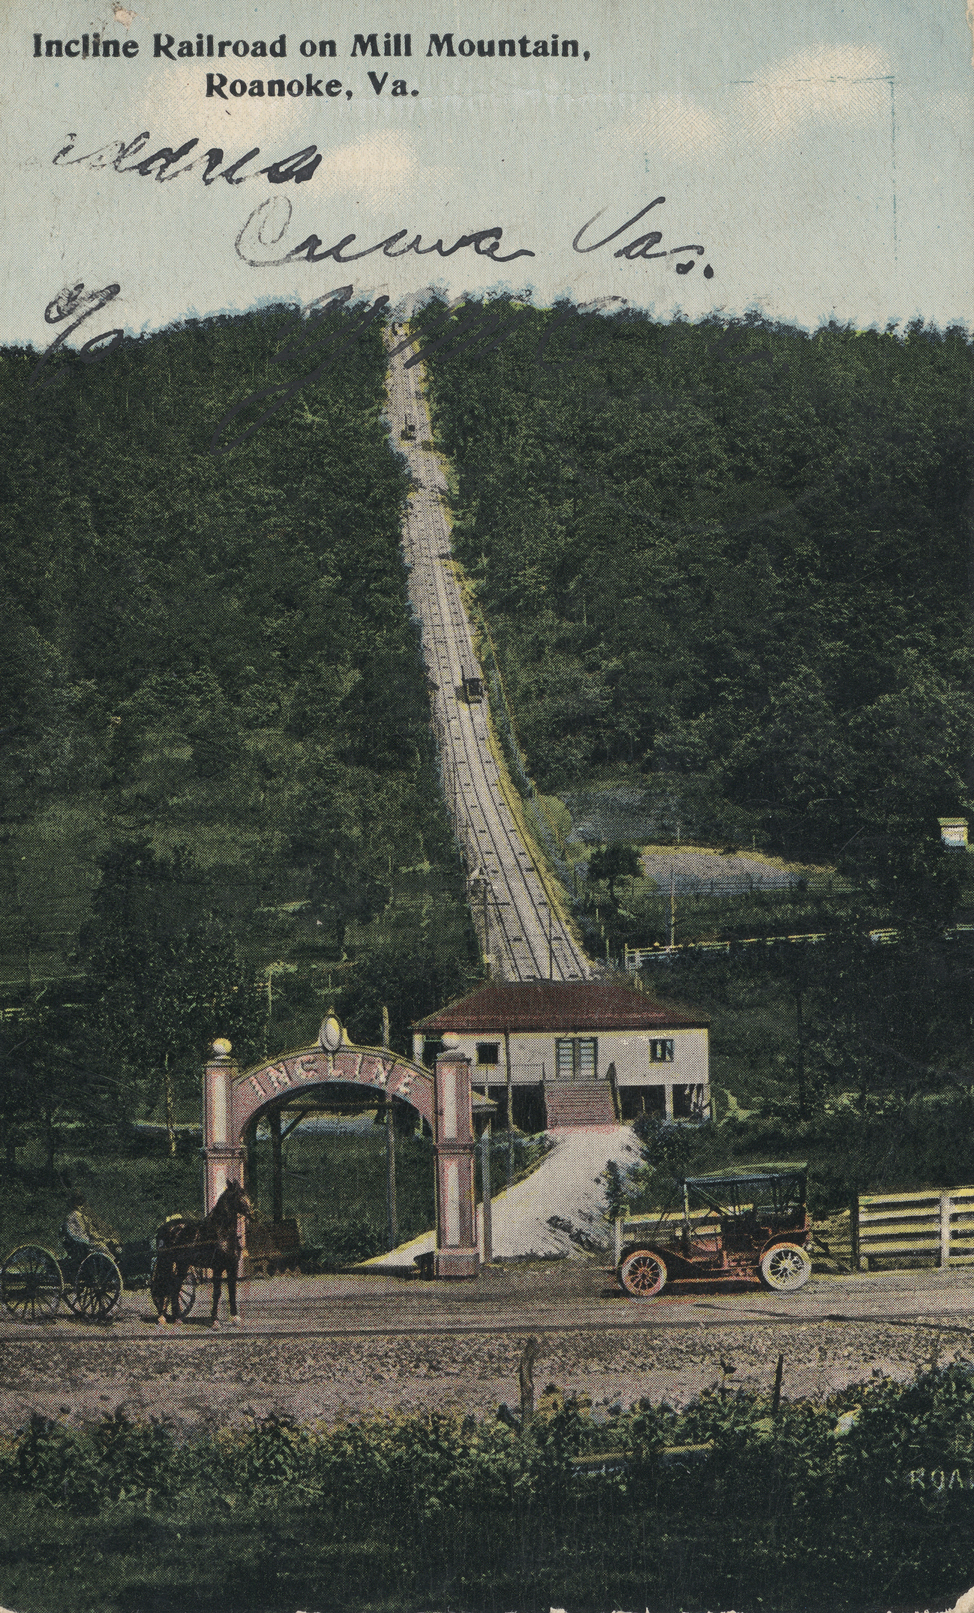 PC 119.81 Mill Mountain and Incline Railway.jpg